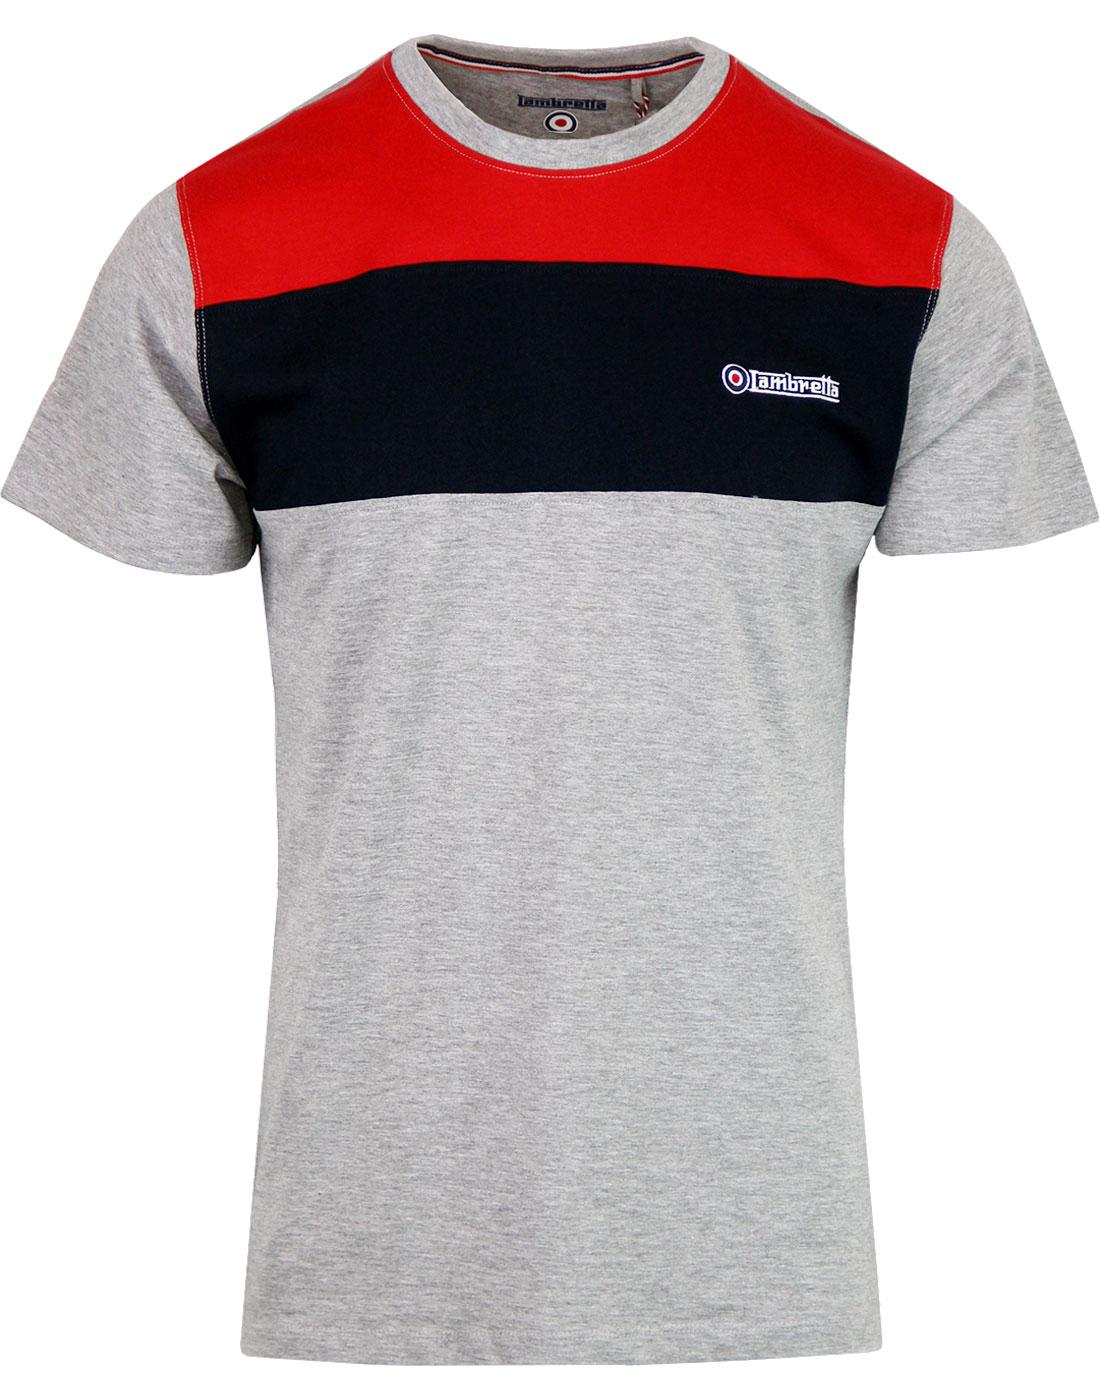 LAMBRETTA Cut & Sew Retro Mod Chest Panel Tee GREY